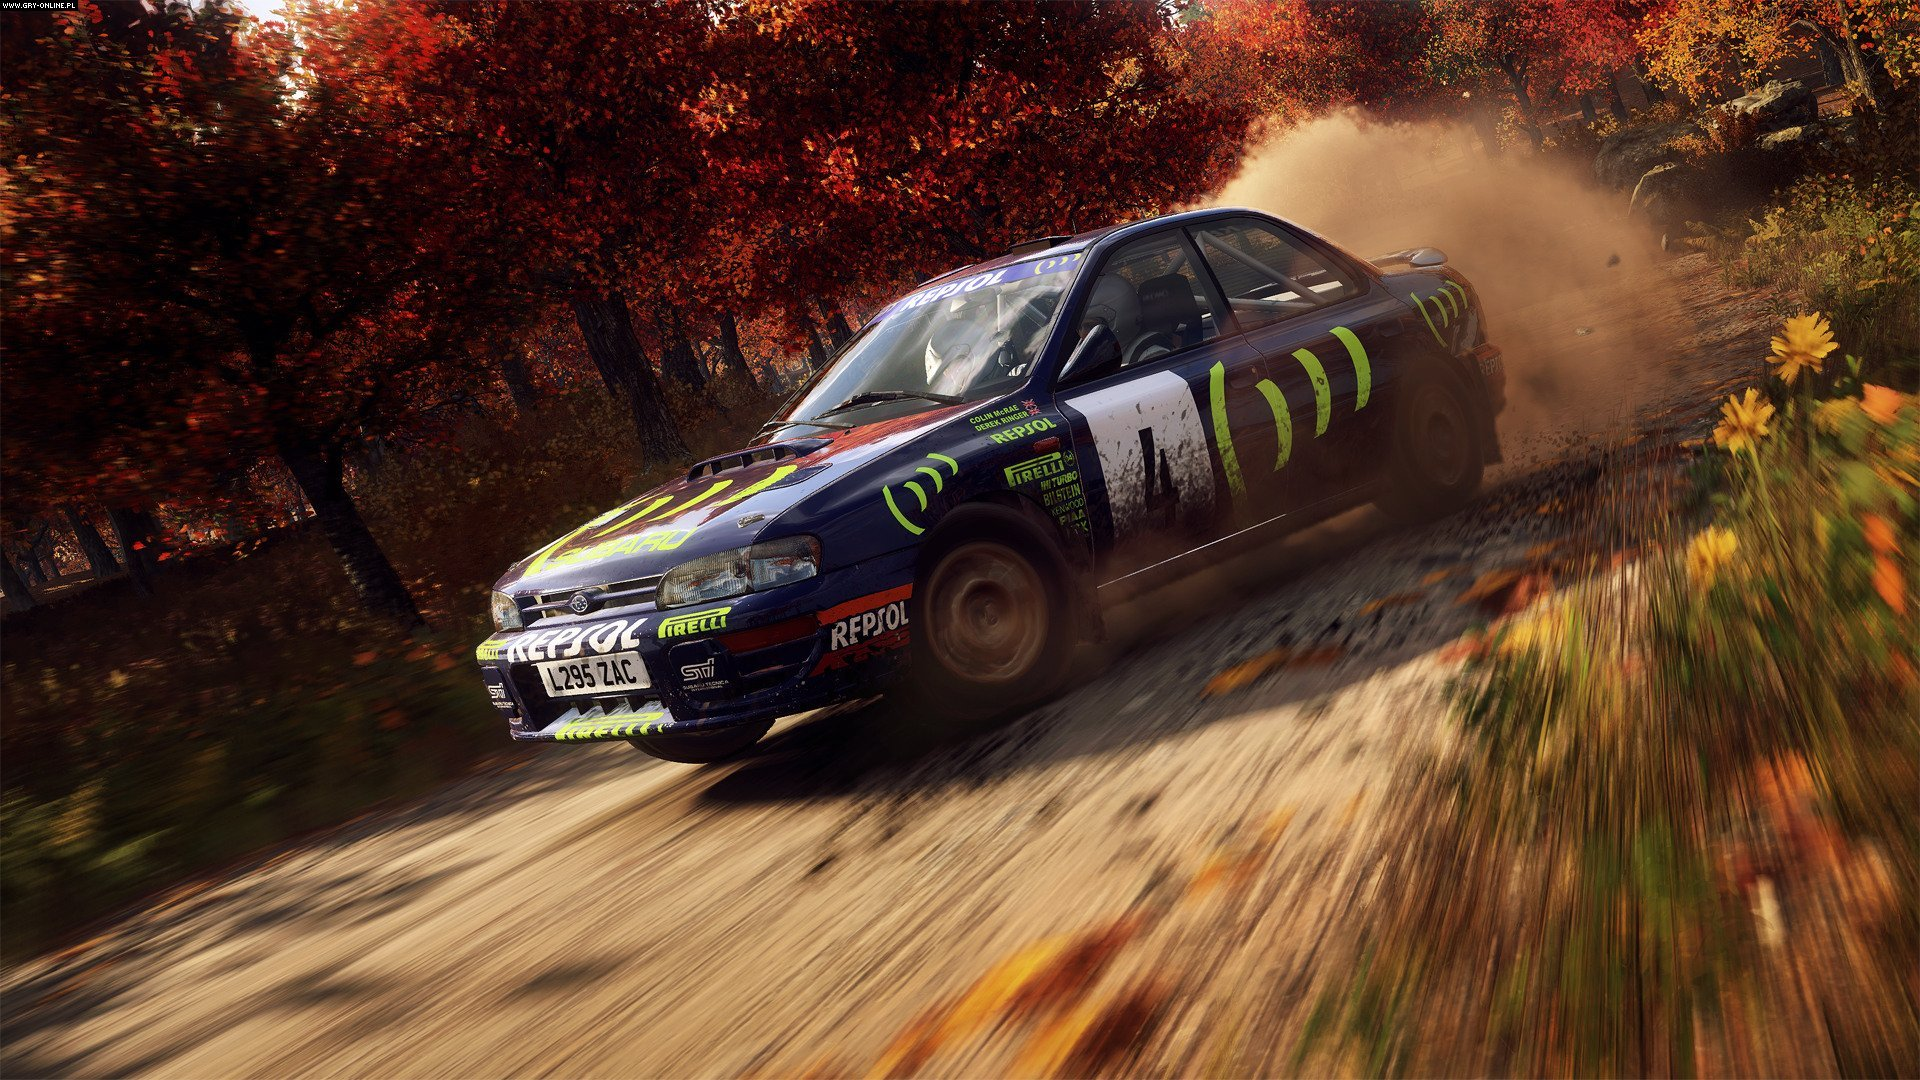 DiRT Rally 2.0 PC, PS4, XONE Gry Screen 34/49, Codemasters Software